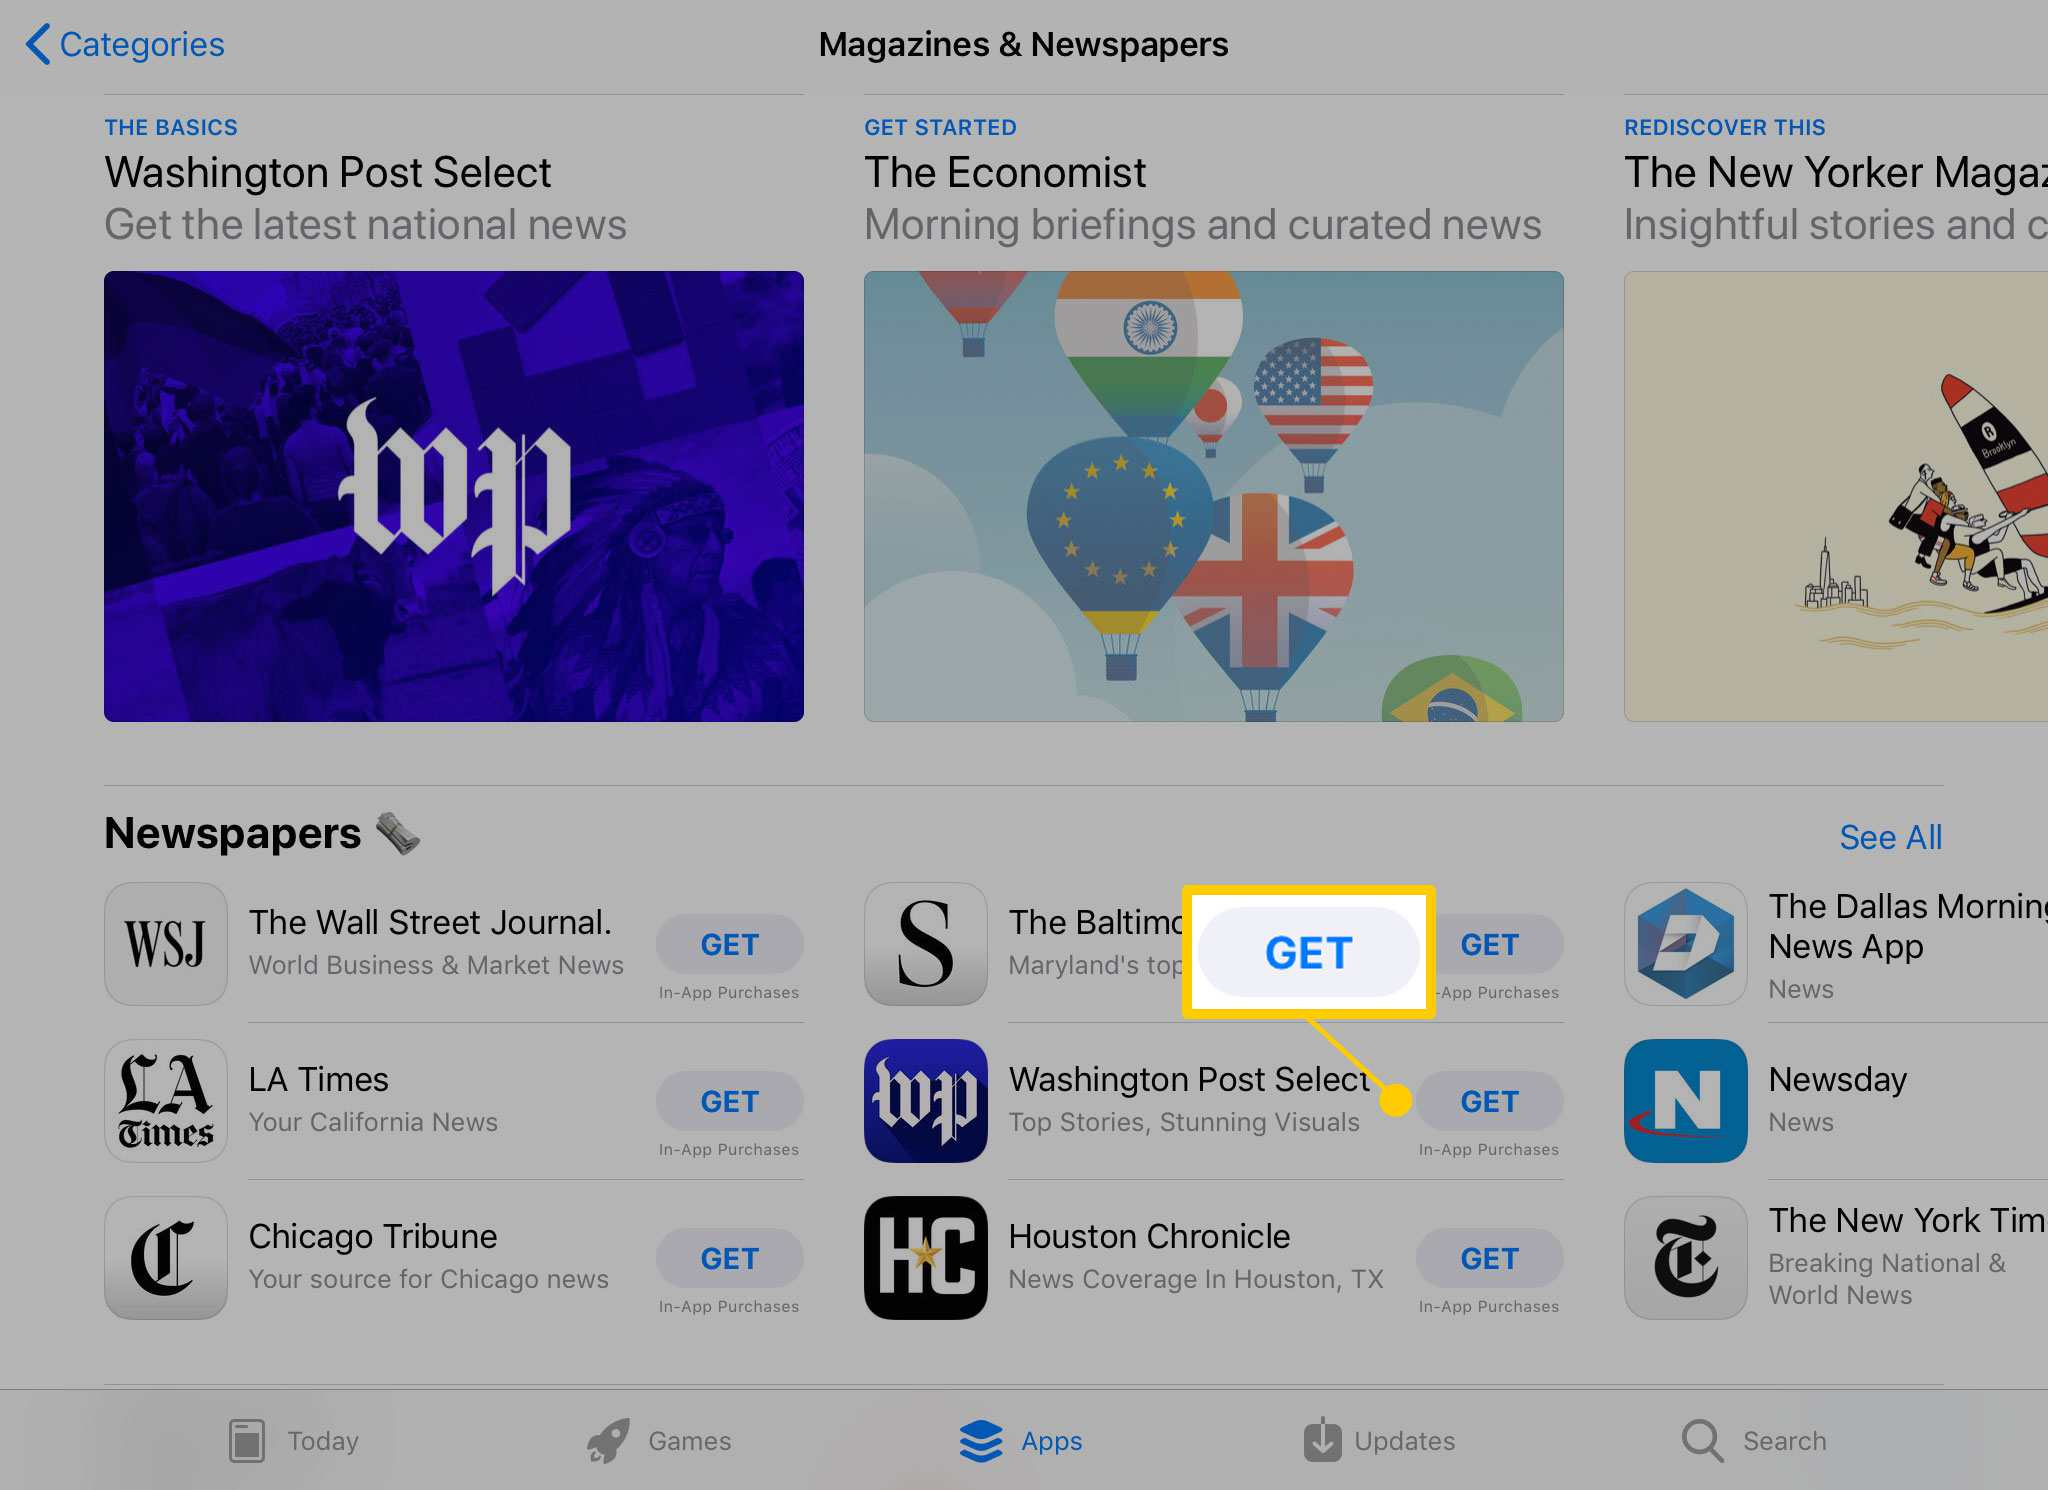 How to Subscribe to a Magazine or Newspaper on the iPad